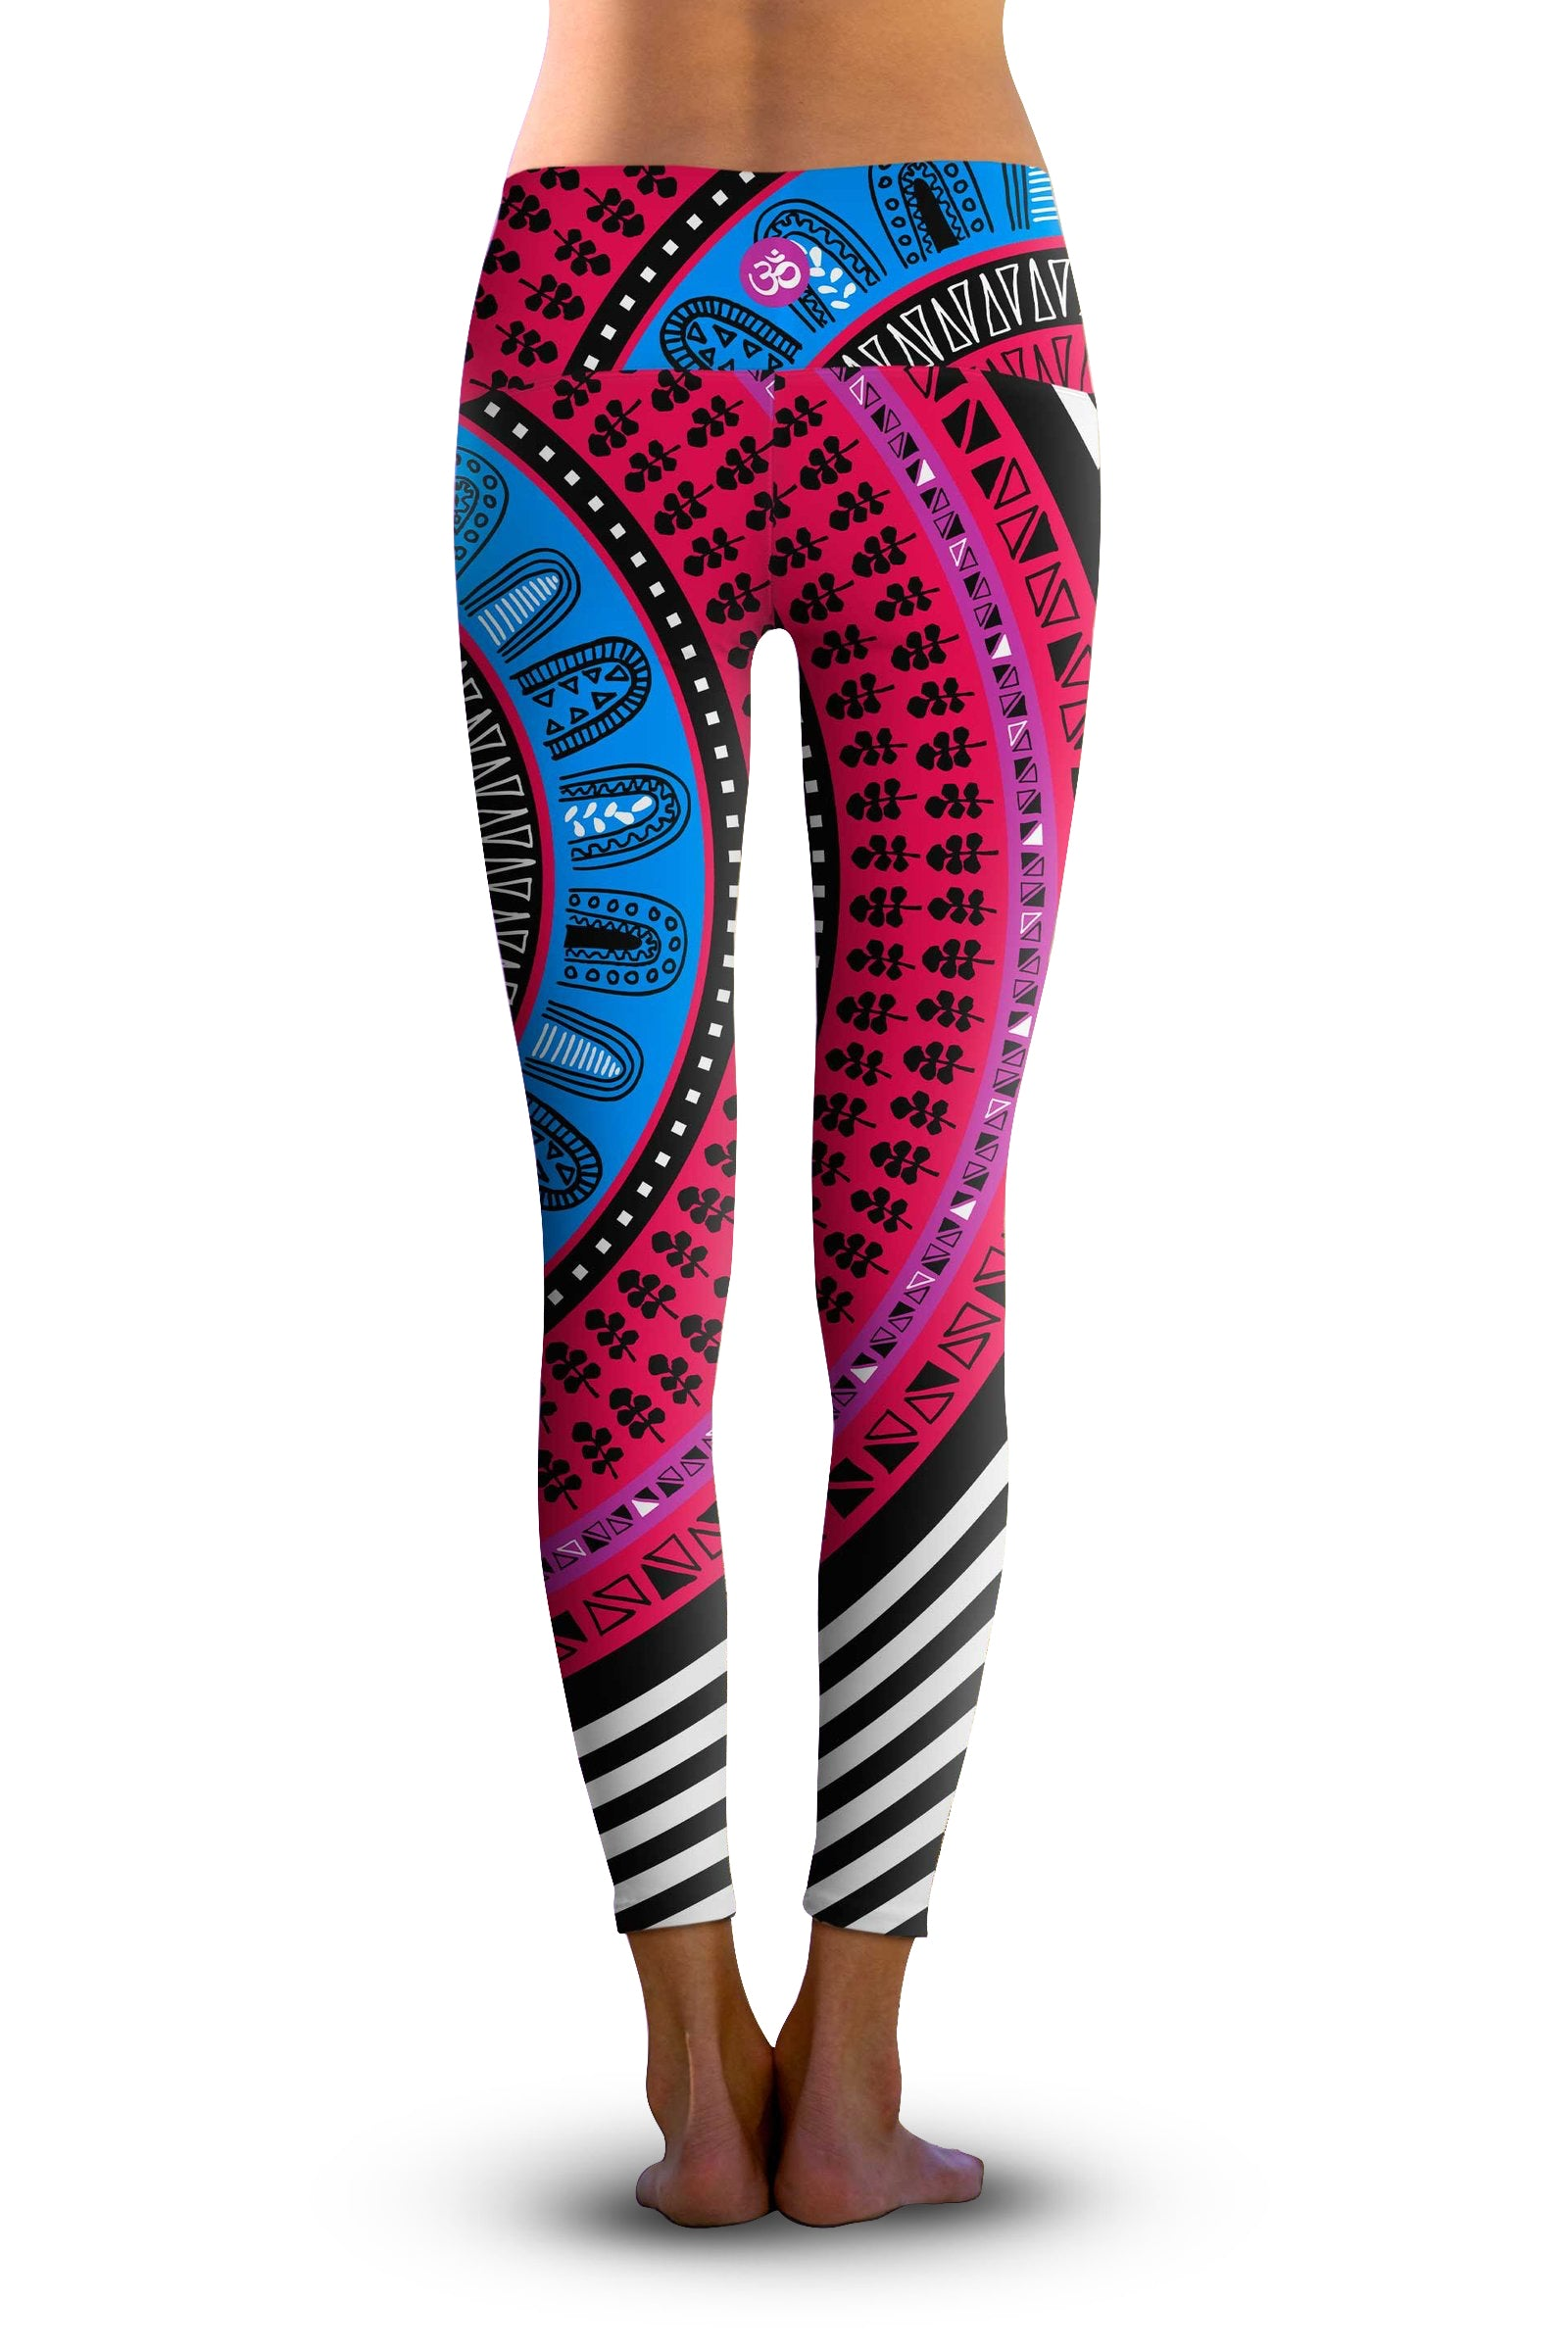 #Gypsy Swirl, Eco-Friendly Active Performance Leggings